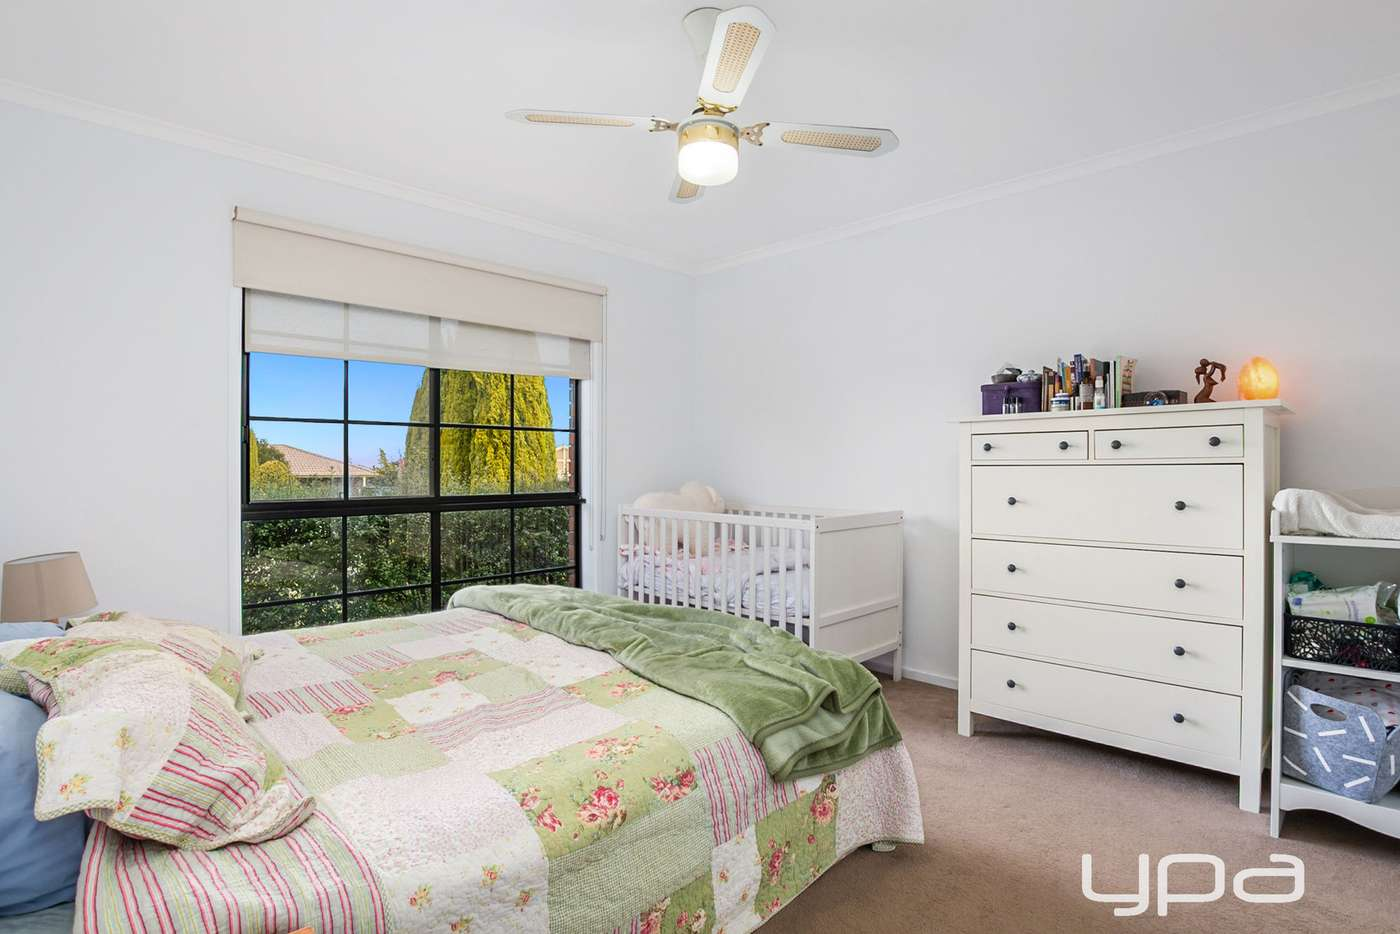 Sixth view of Homely house listing, 6 Cashmore Court, Bacchus Marsh VIC 3340